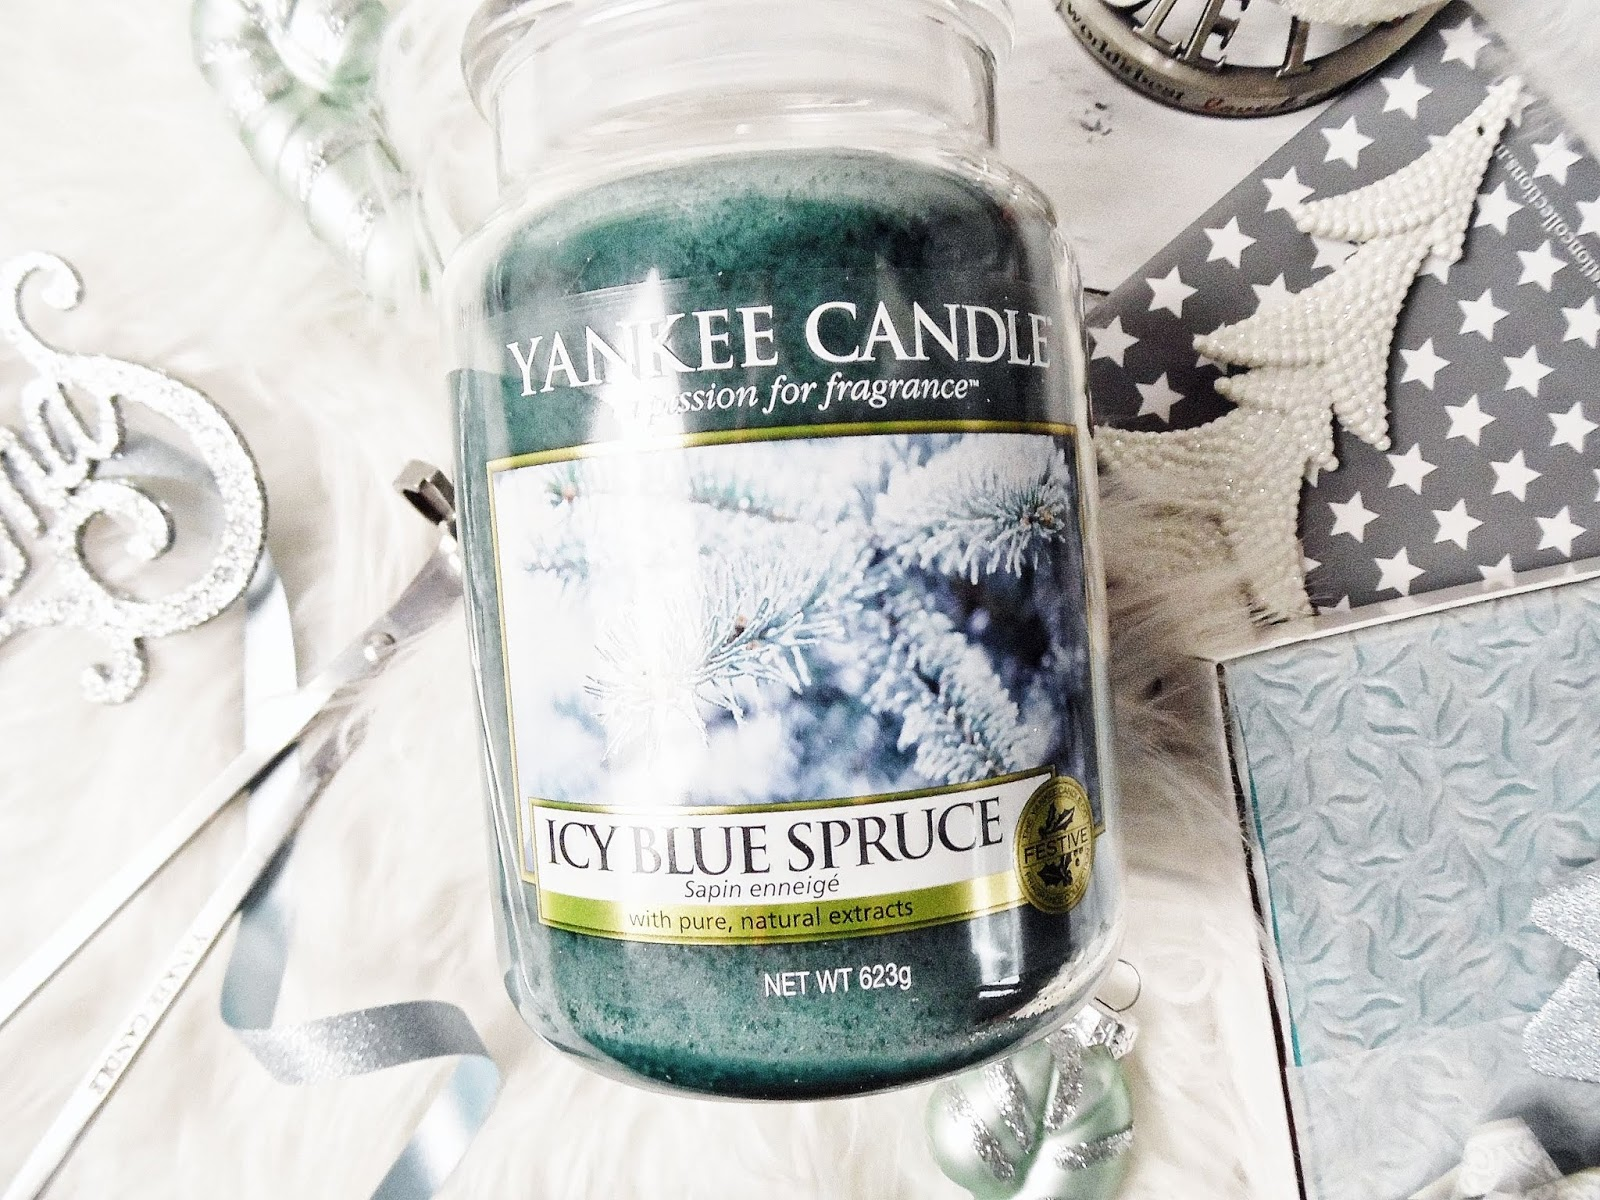 icy blue spruce yankee candle q4 holiday sparkle